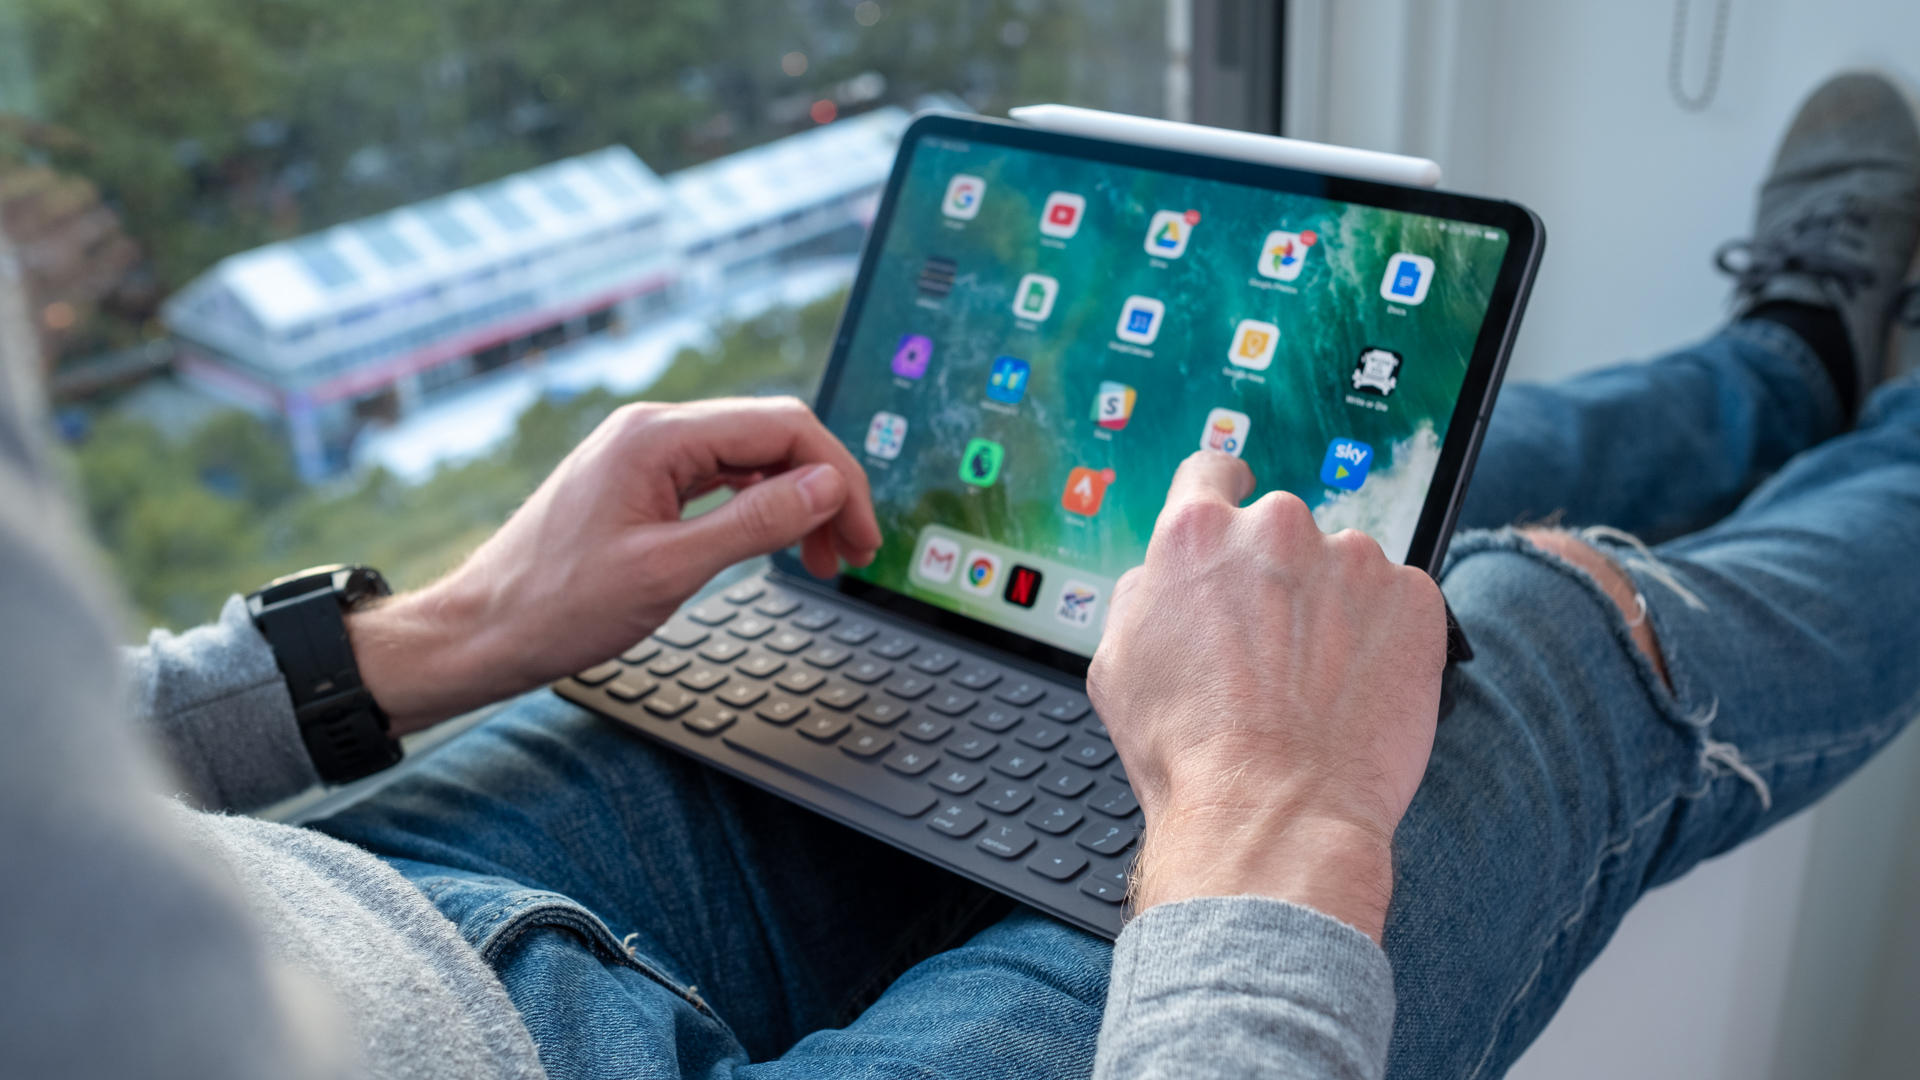 The Best Ipad 2019 Is The Ipad Air Mini Or Pro The Best For You